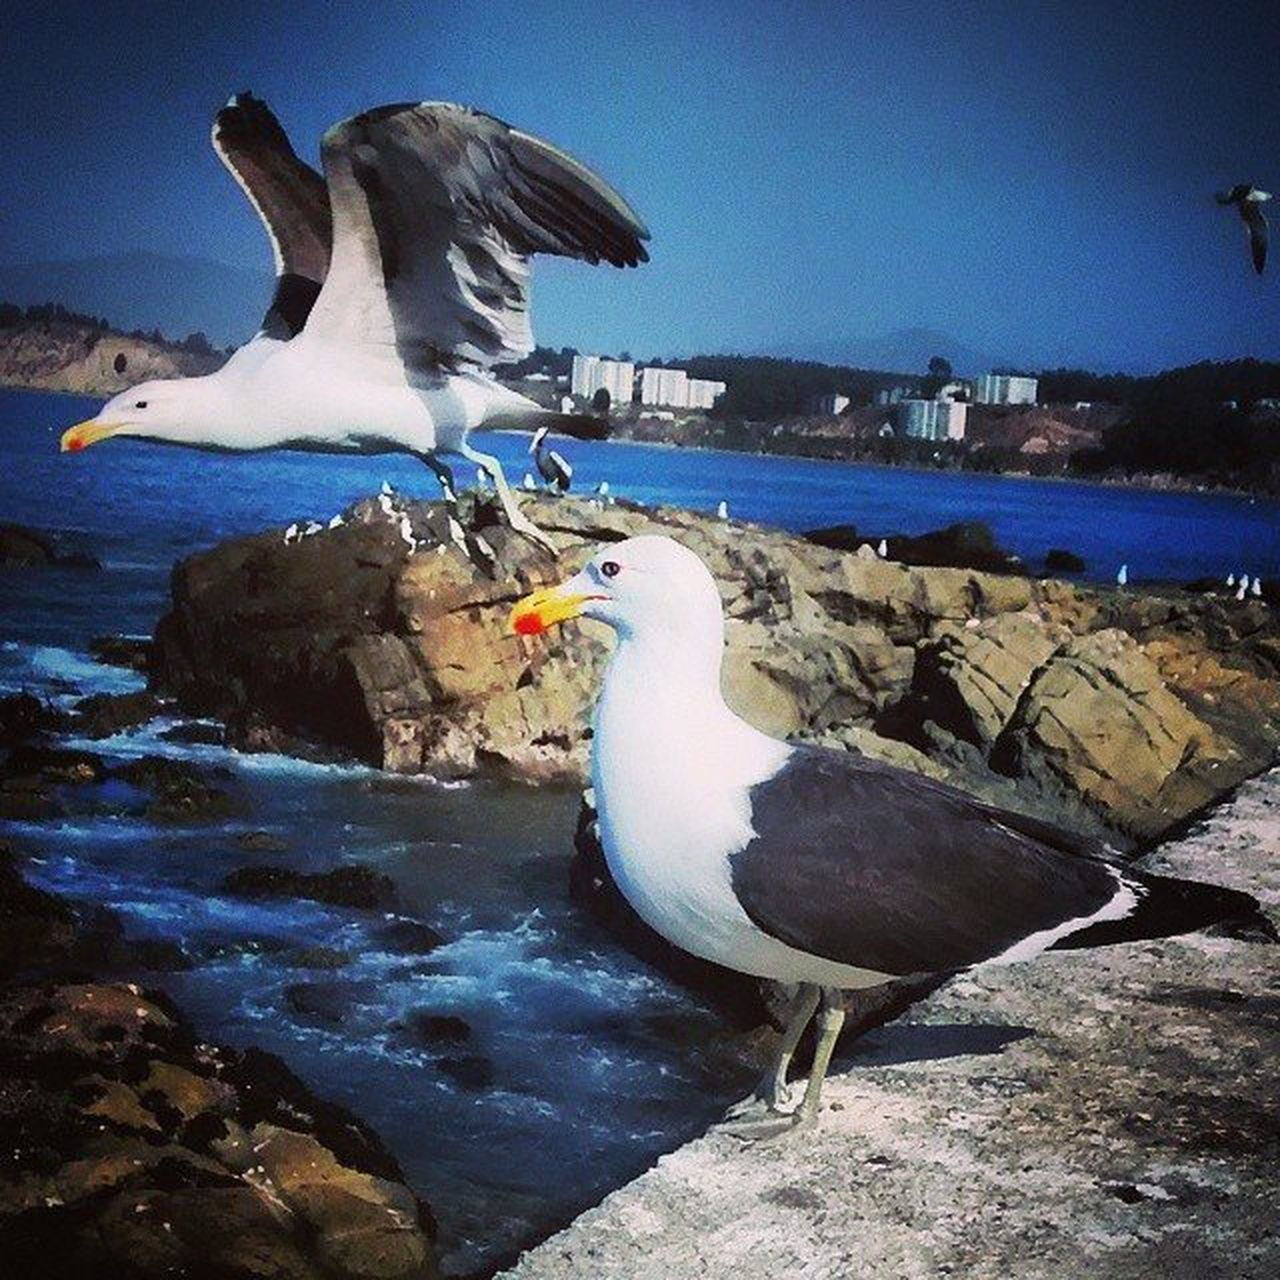 2016 Followme Followyou Followforfollow F4F Followback Lokeforlike Like4like Picoftheday Photo Instapic Instafoto Instacolors Instafollowers Instamoment Smile Photograph Instacamera Goodmoment Memoriesforlife Bird Seagulls Ocean Landscape Attherighttime chile